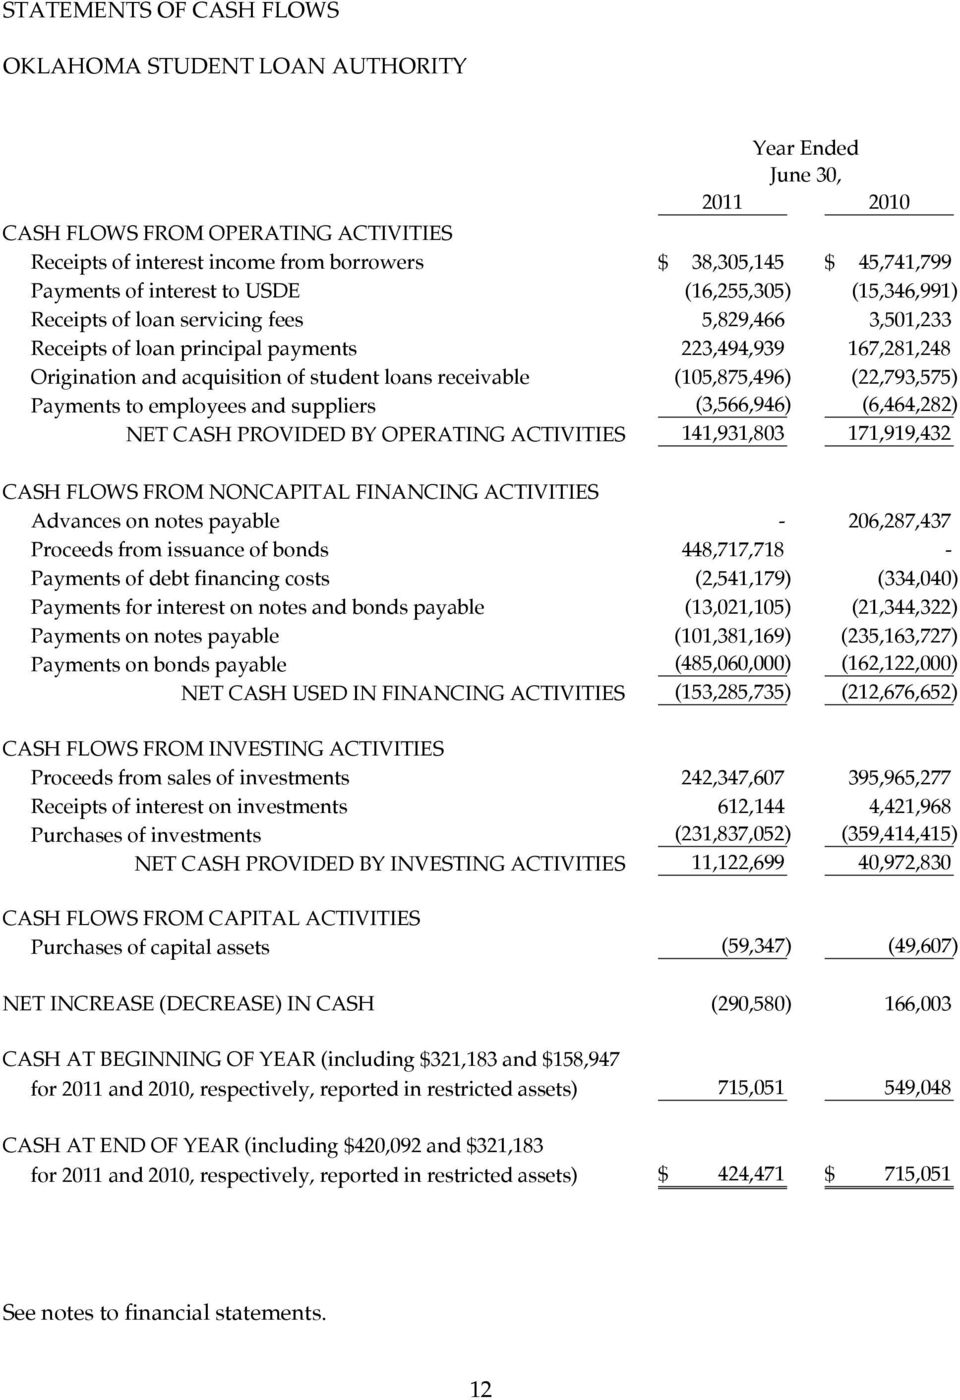 (105,875,496) (22,793,575) Payments to employees and suppliers (3,566,946) (6,464,282) NET CASH PROVIDED BY OPERATING ACTIVITIES 141,931,803 171,919,432 CASH FLOWS FROM NONCAPITAL FINANCING